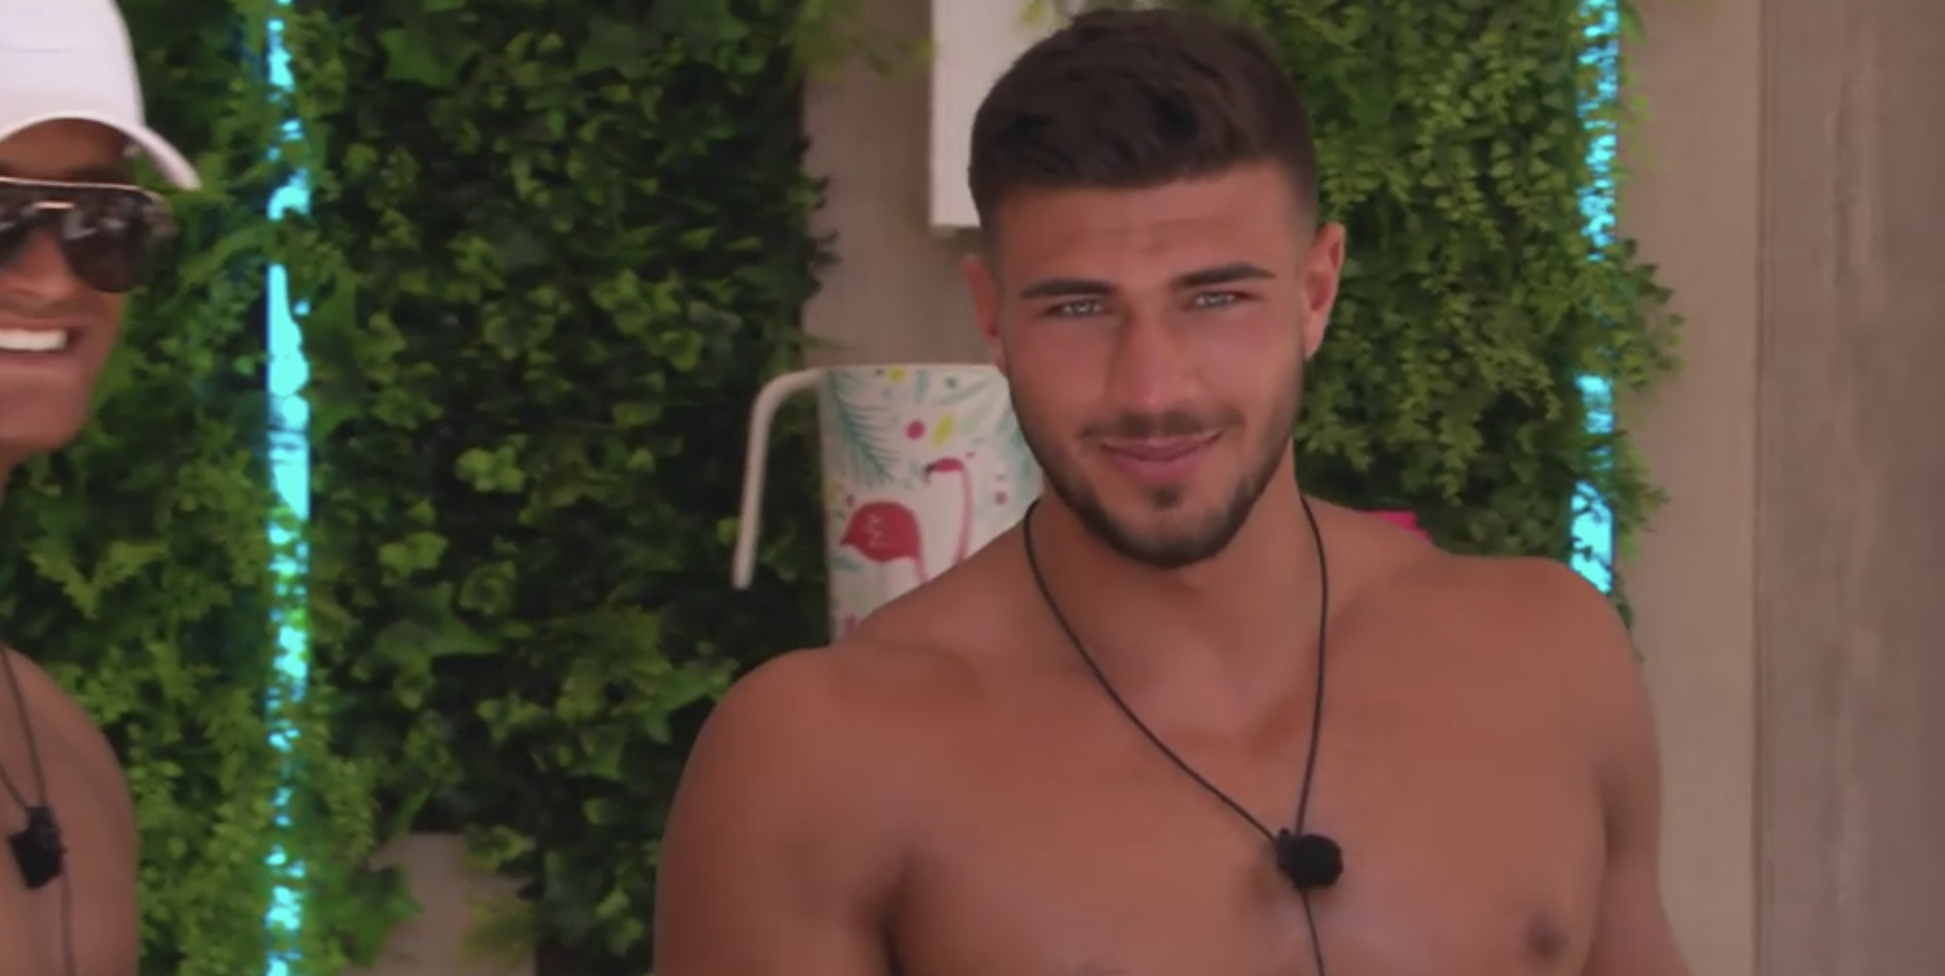 Nearly 500 complaints made to Ofcom about Love Island contestant Maura Higgins